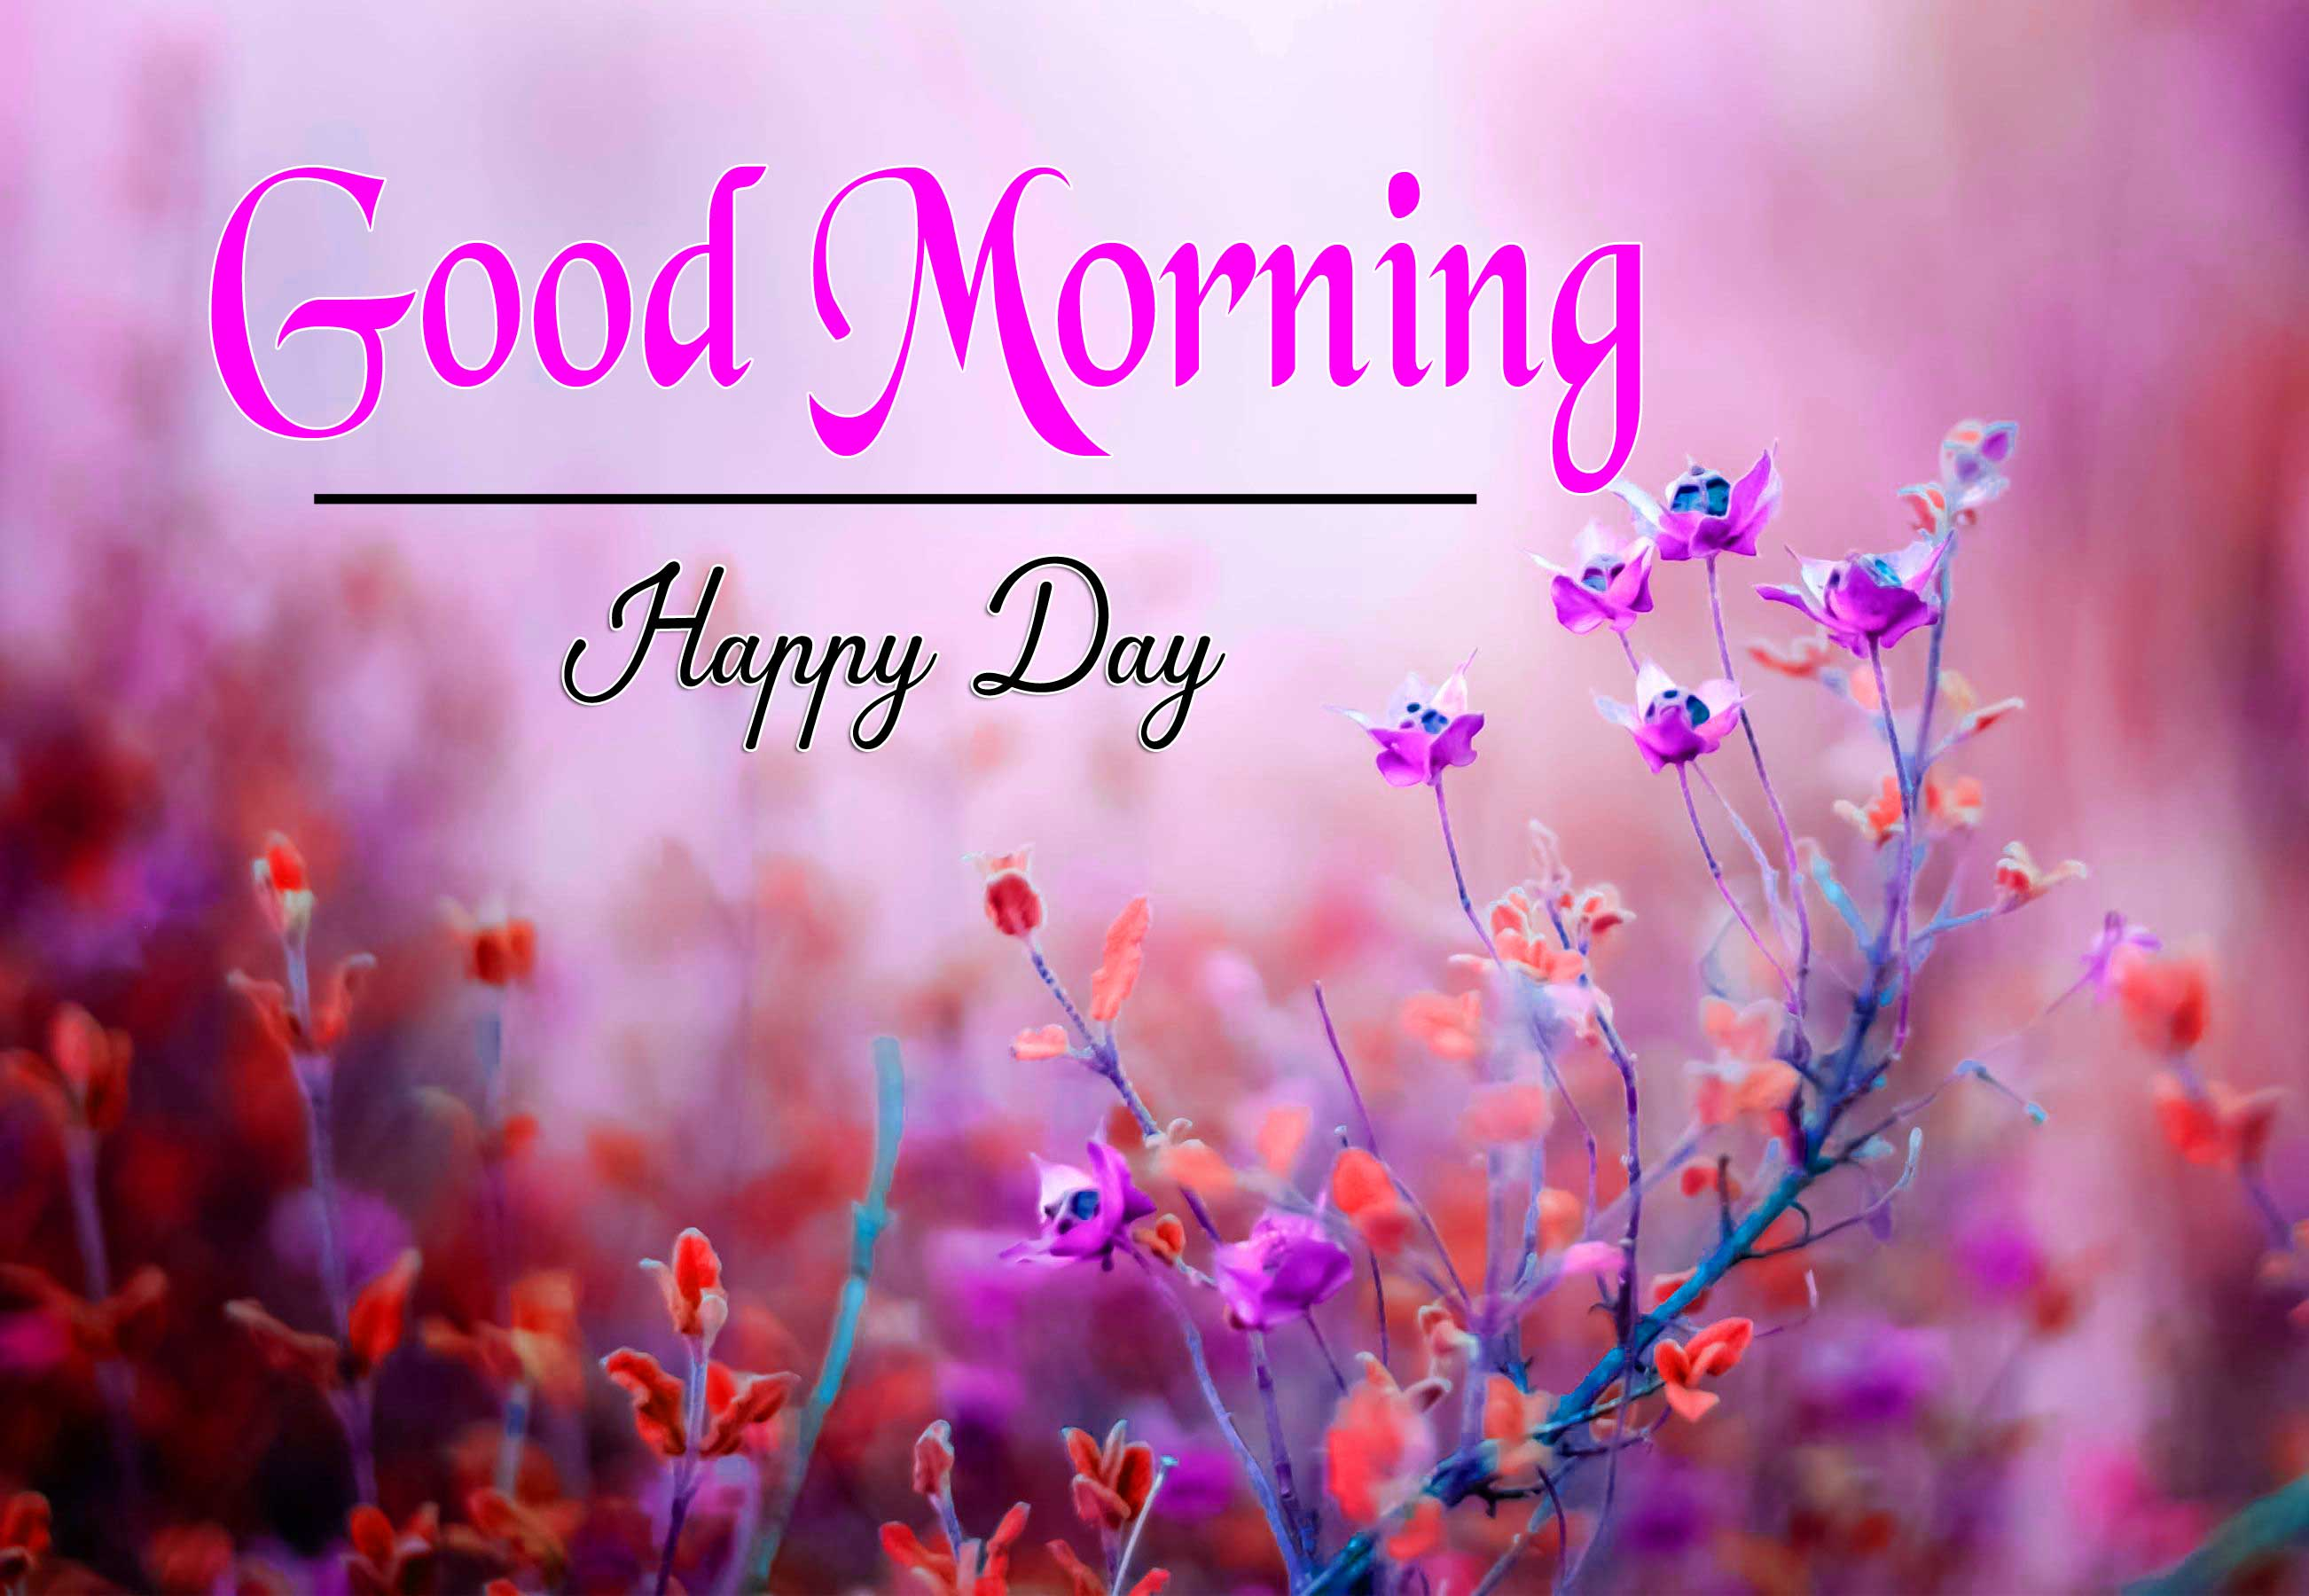 Amazing Good Morning Images Wallpaper for Whatsapp